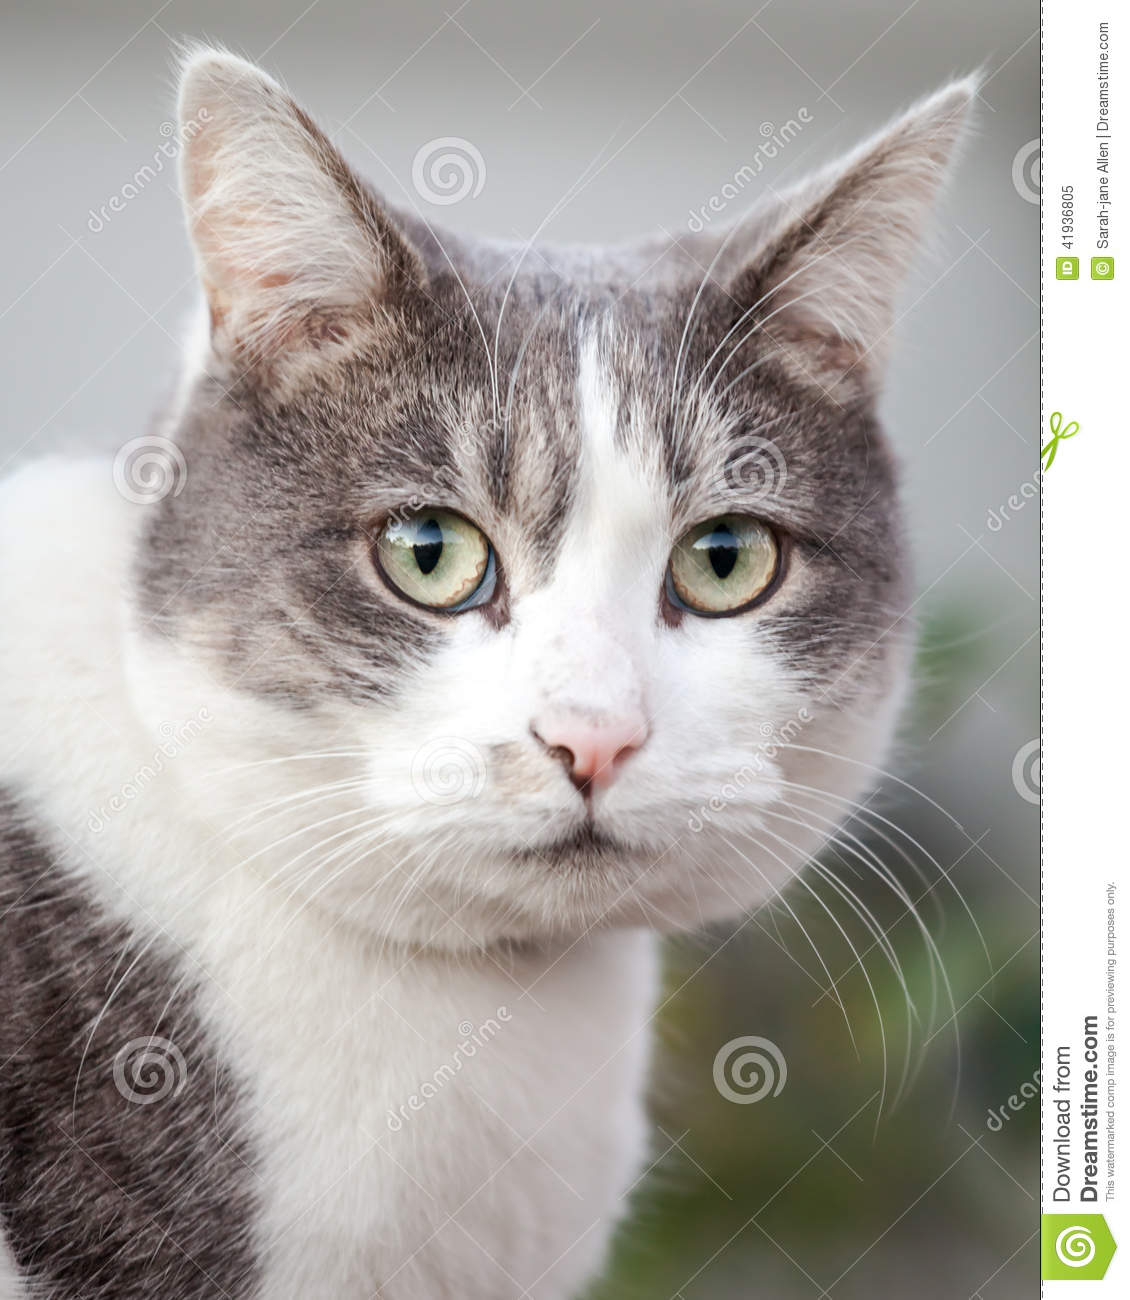 Head Of Grey And White Cat Looking Anxious And Stressed